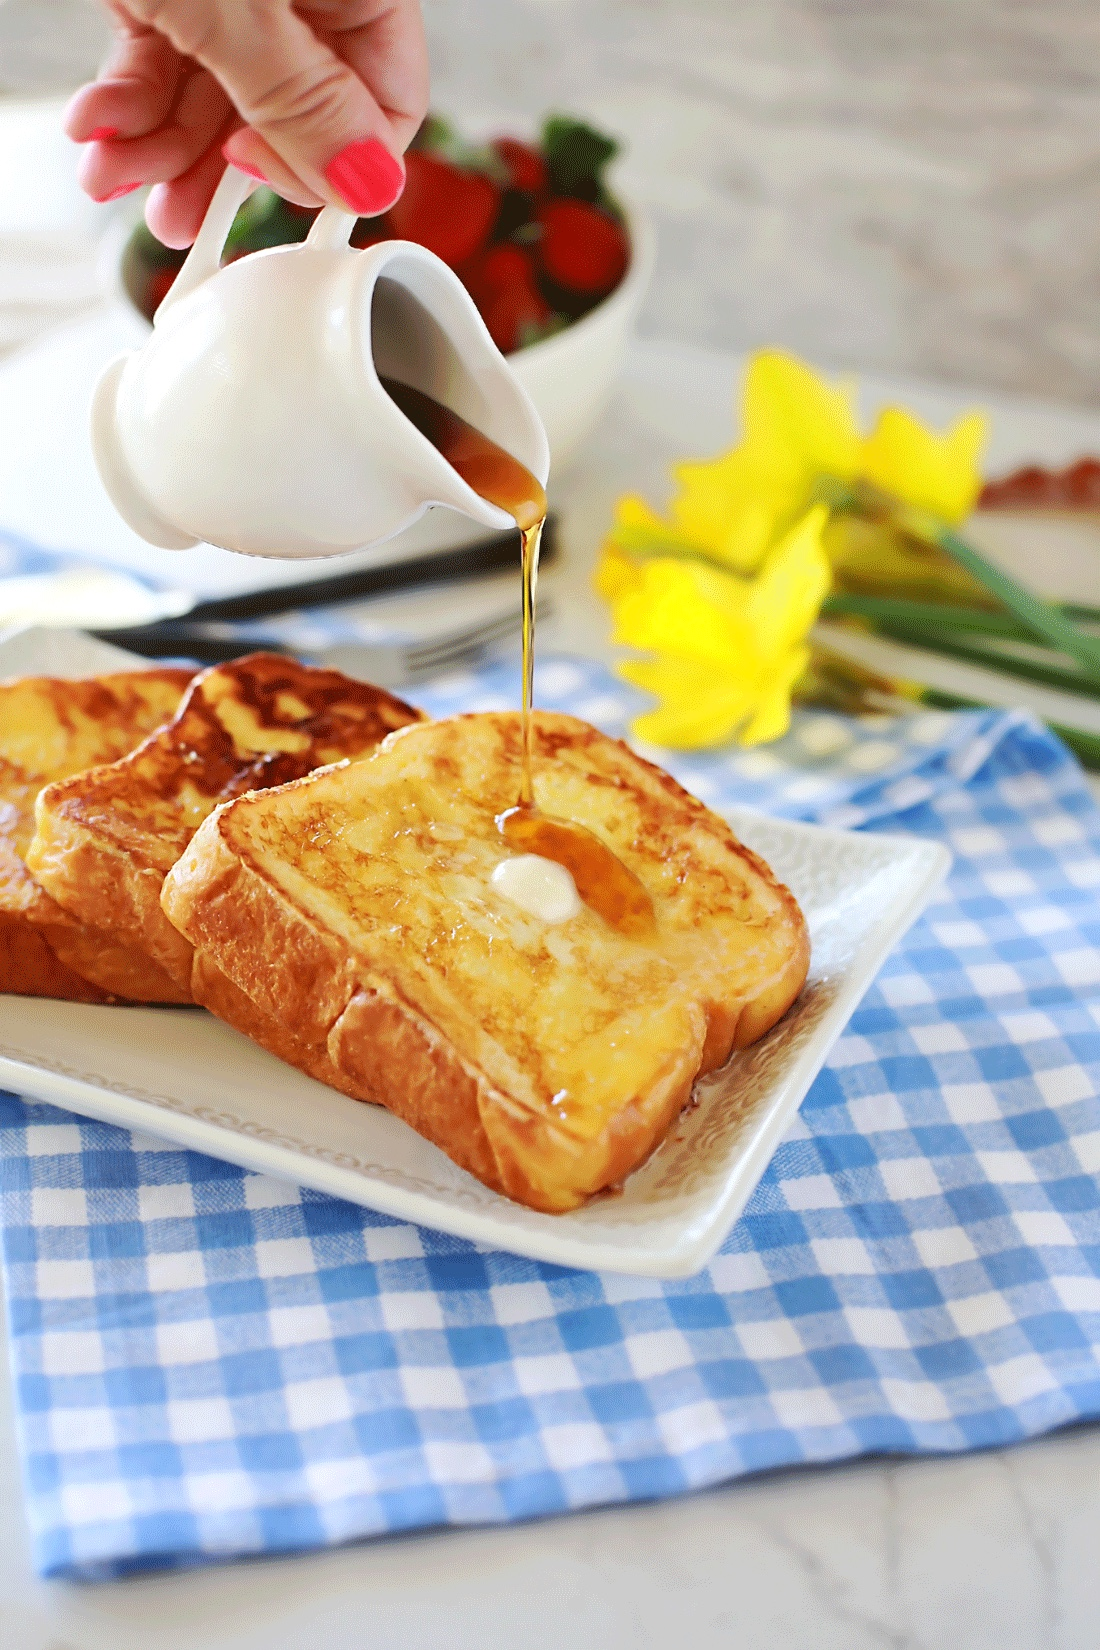 Best French Toast recipe ever!